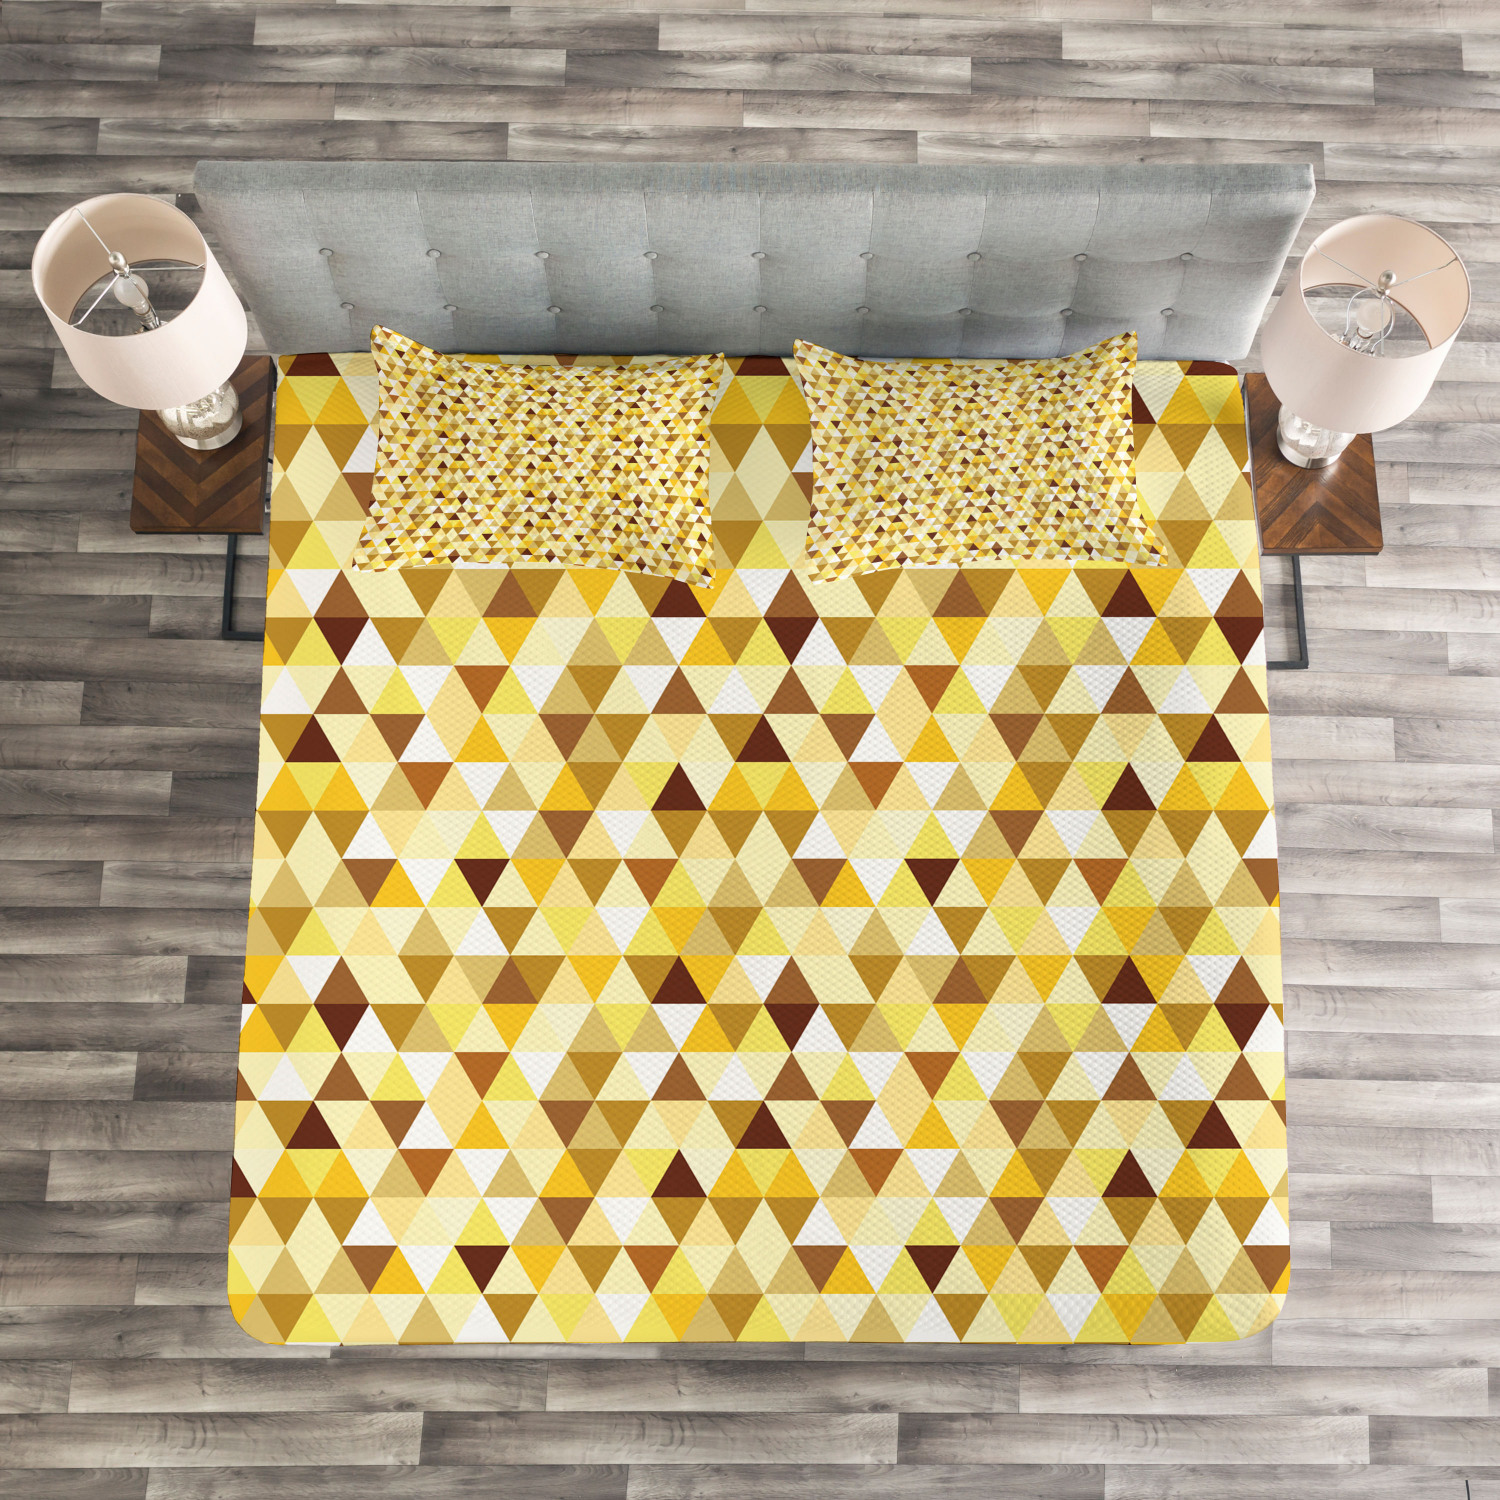 Geometric Quilted Bedspread & Pillow Shams Set, Funky Vivid Triangles Print